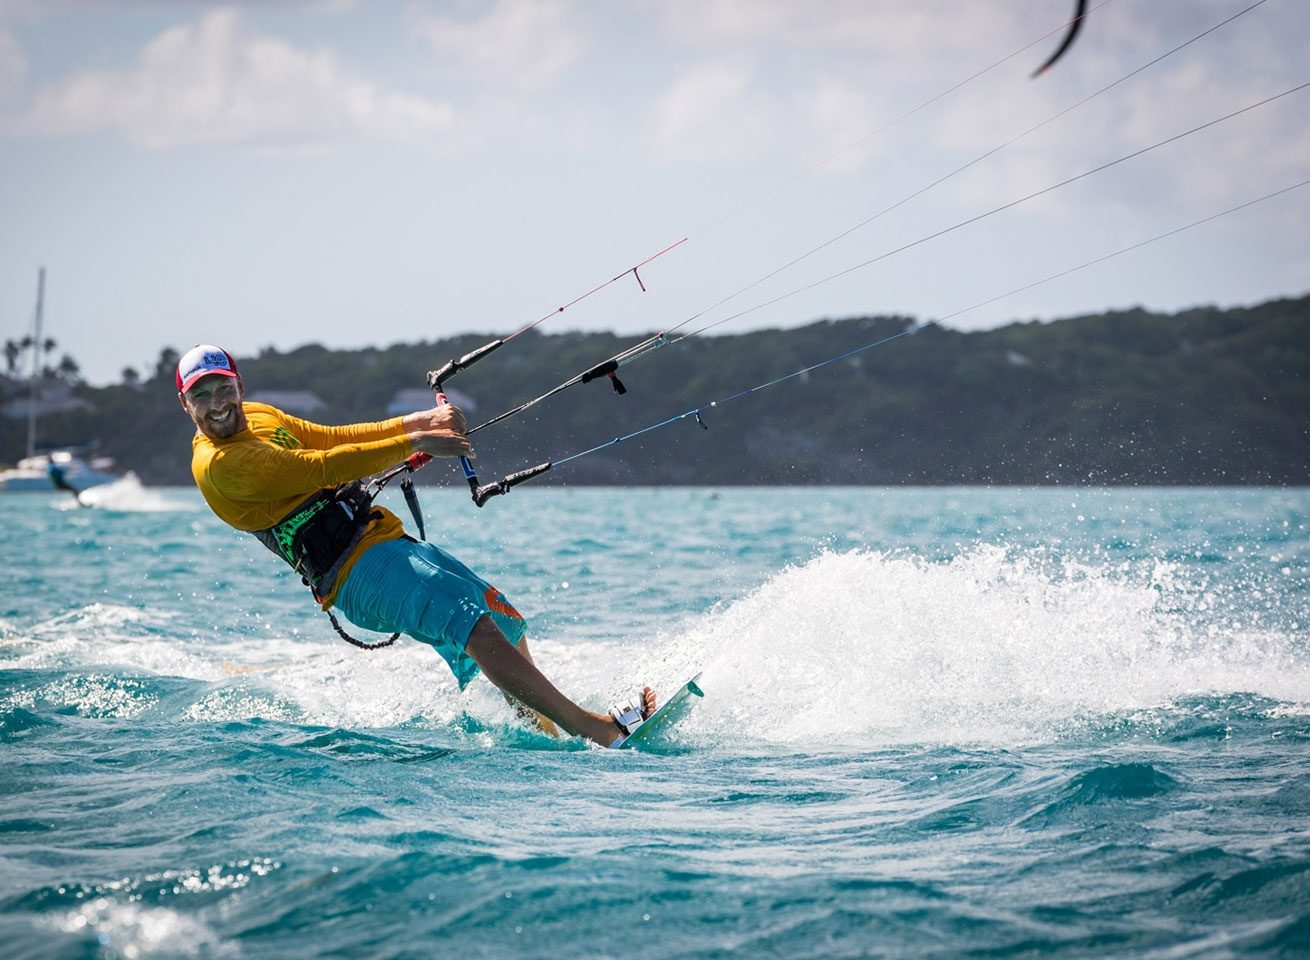 kitesurf equipment rental in the caribbean at 40knots